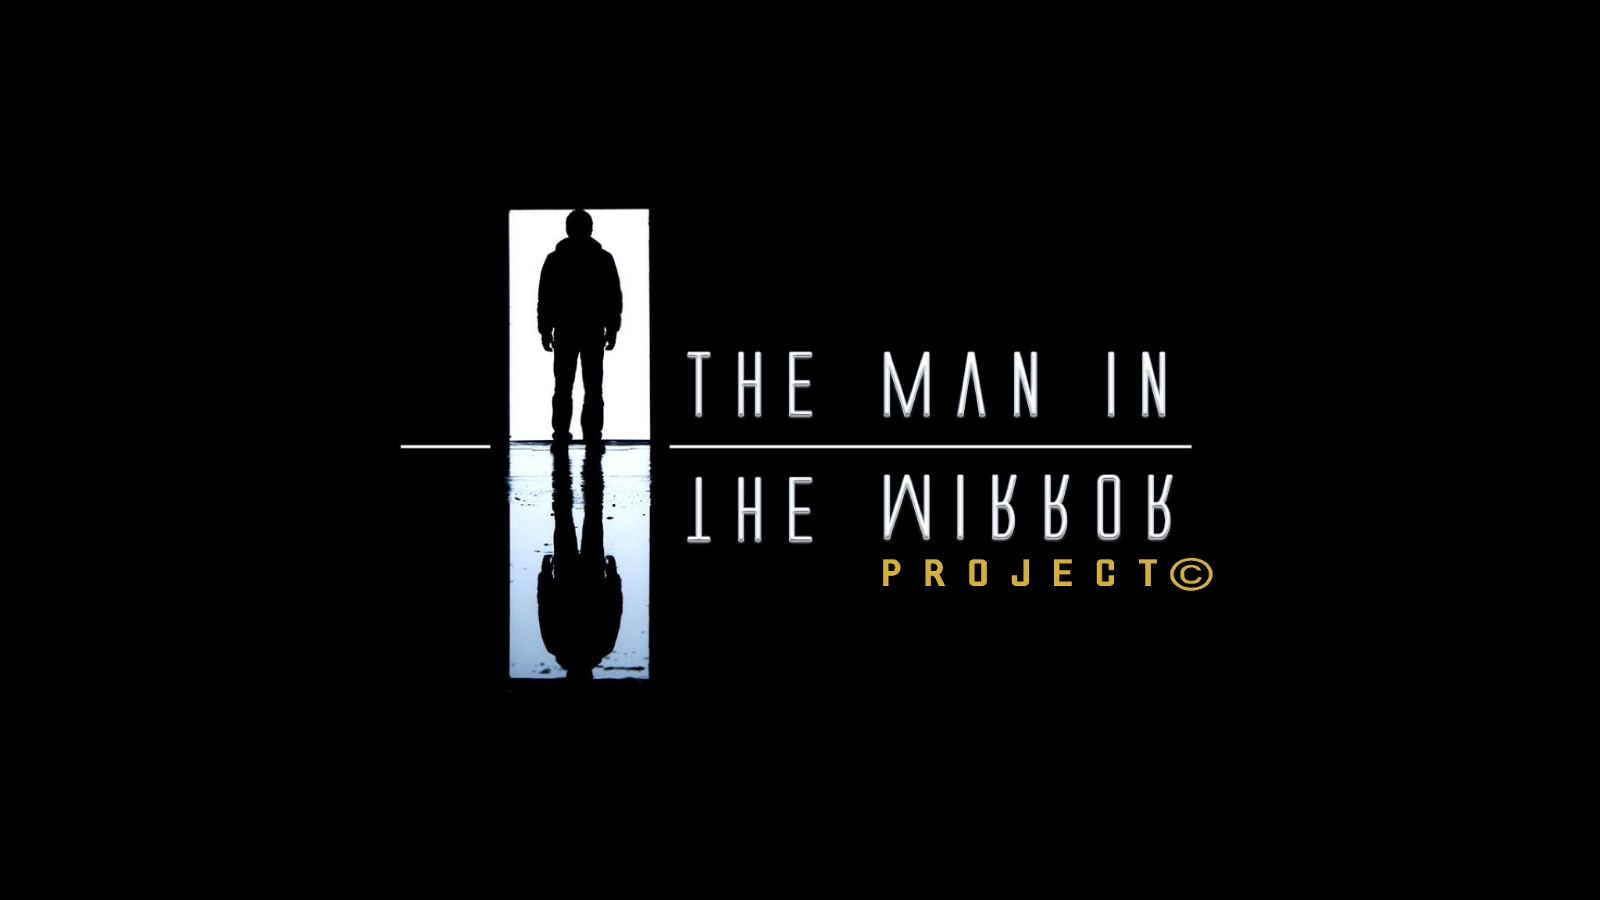 The Man In The Mirror Project